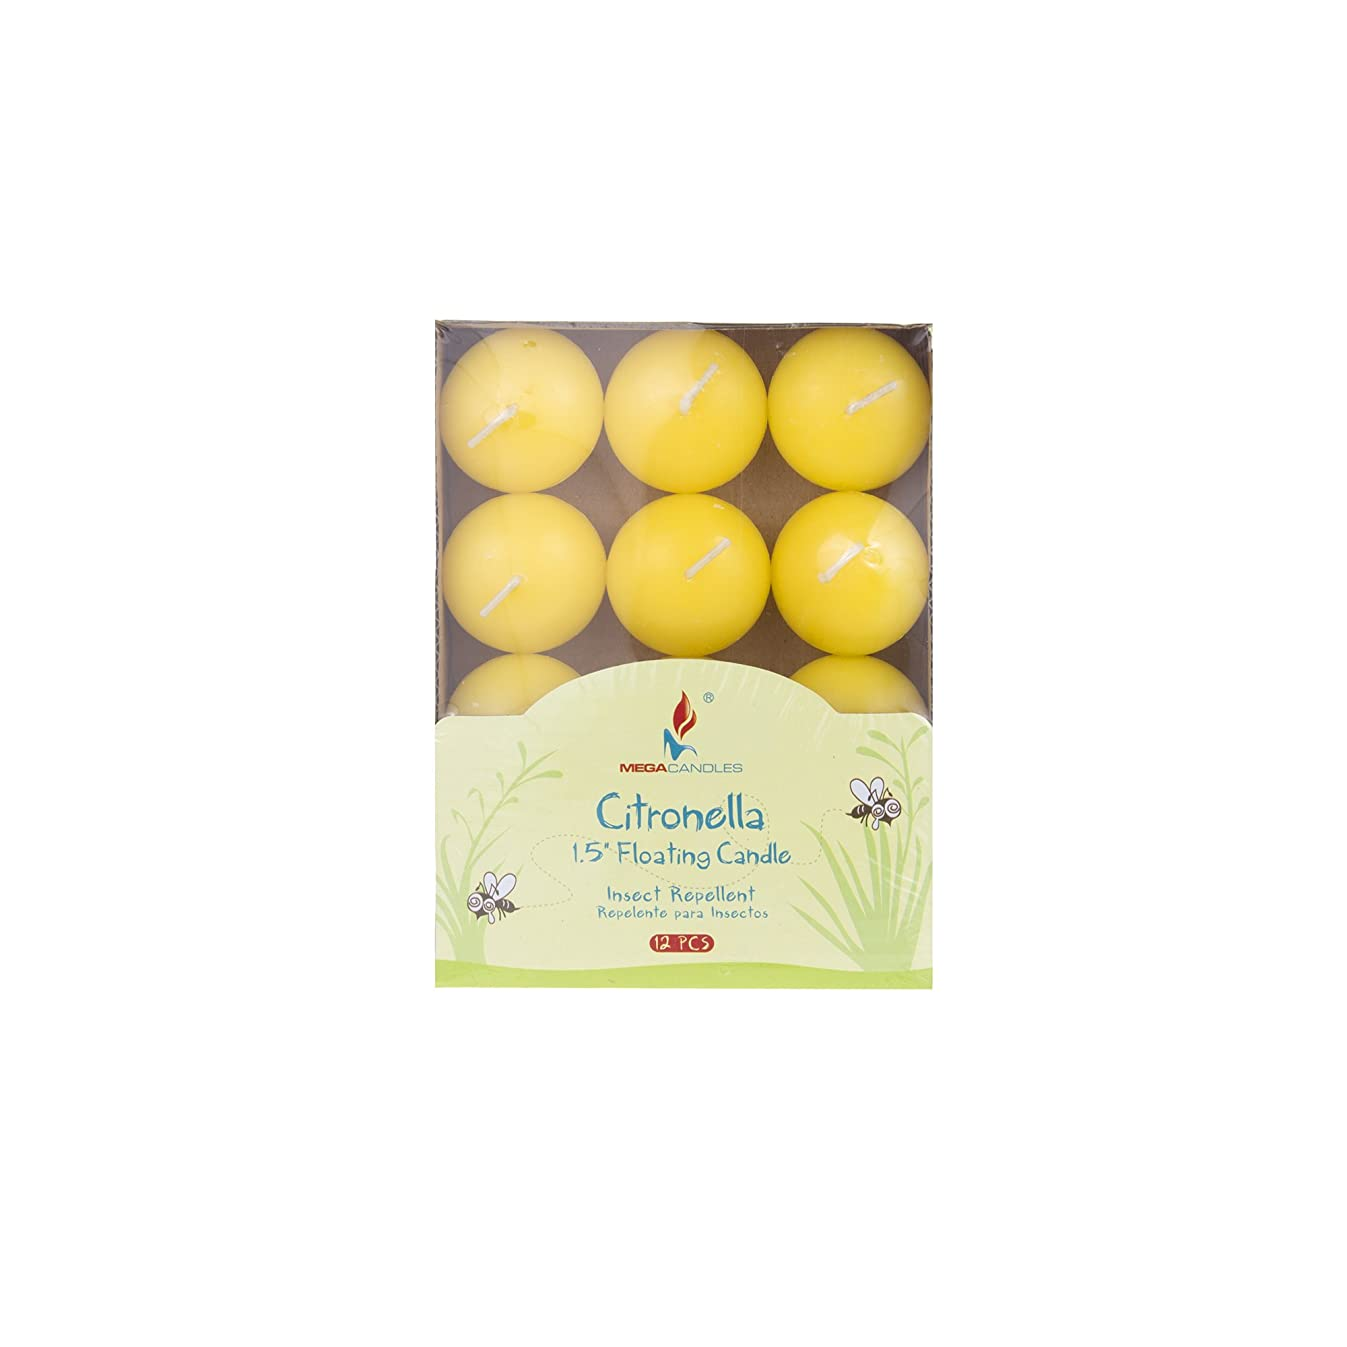 Mega Candles 12 pcs Citronella Floating Disc Candle   Hand Poured Paraffin Wax Candles 1.5